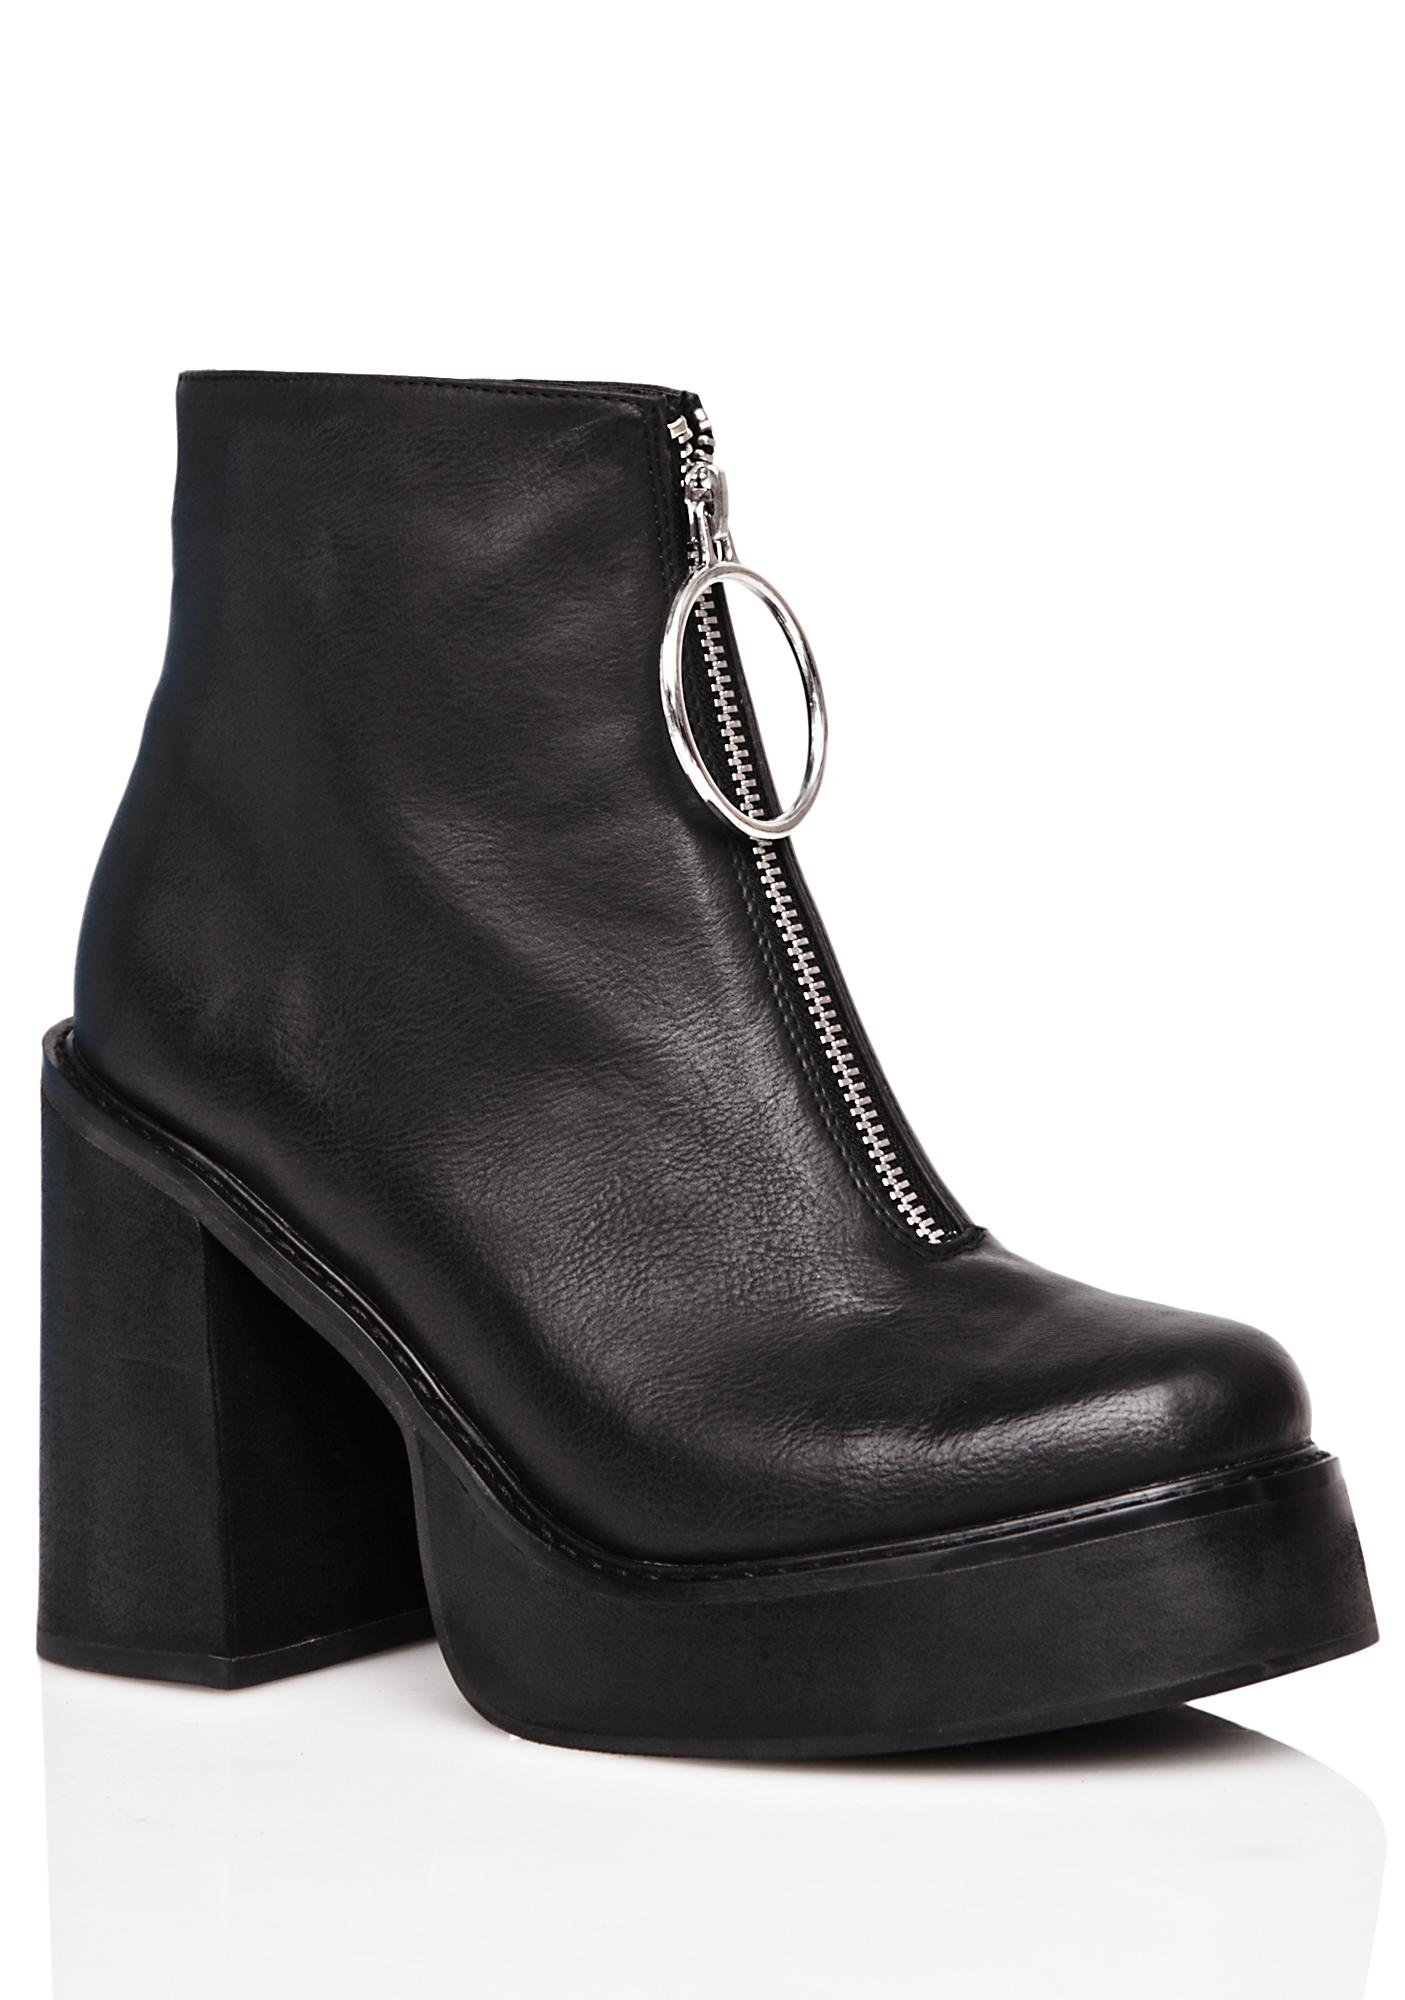 ba27480ec7 ... Current Mood Franky Platform Boots ...